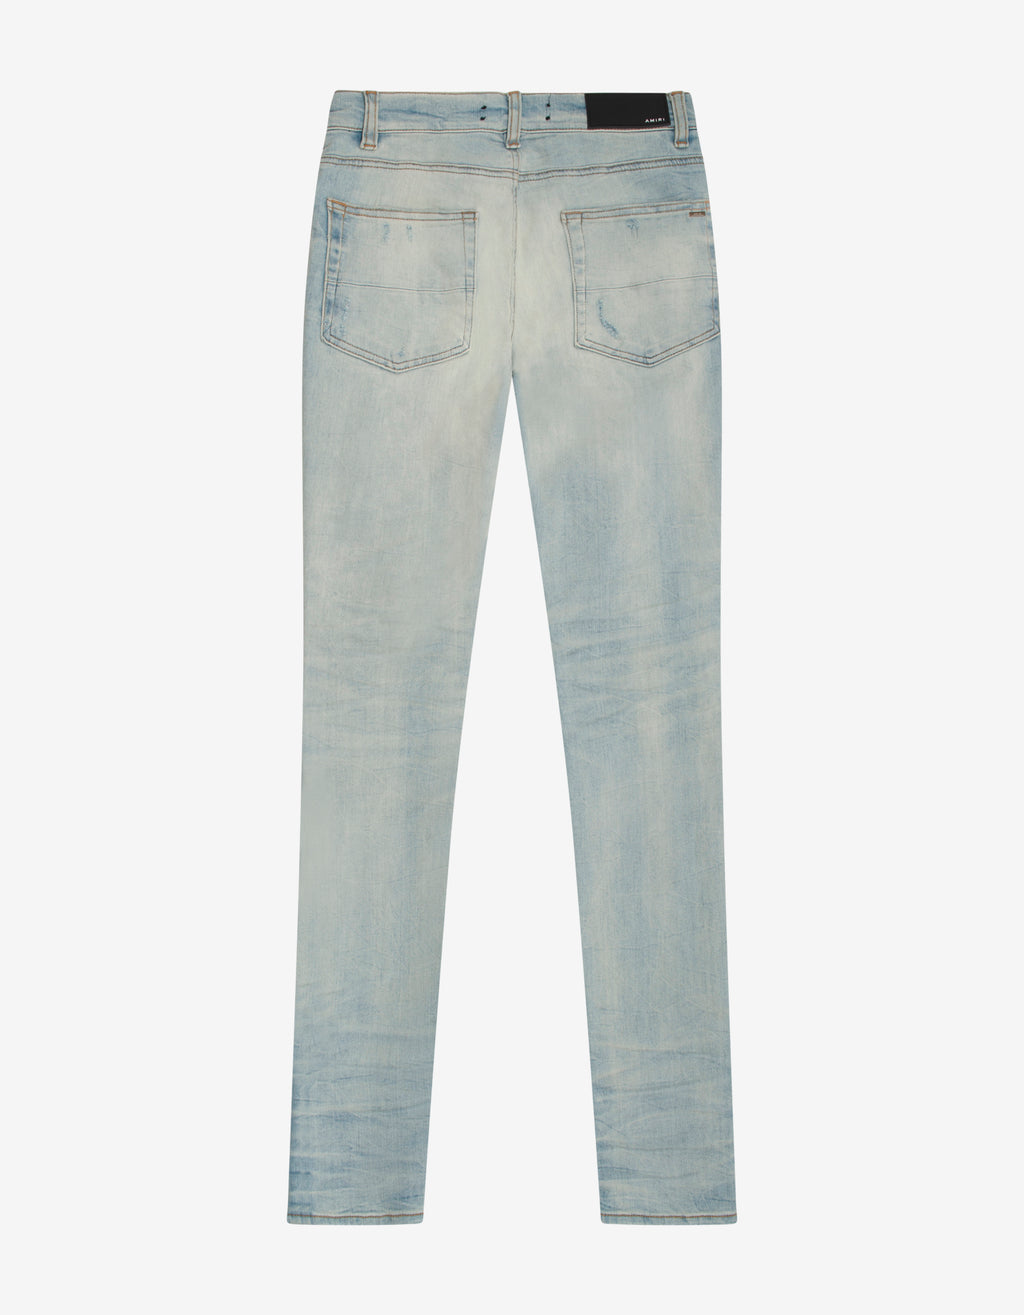 Thrasher Plus Light Crafted Indigo Jeans